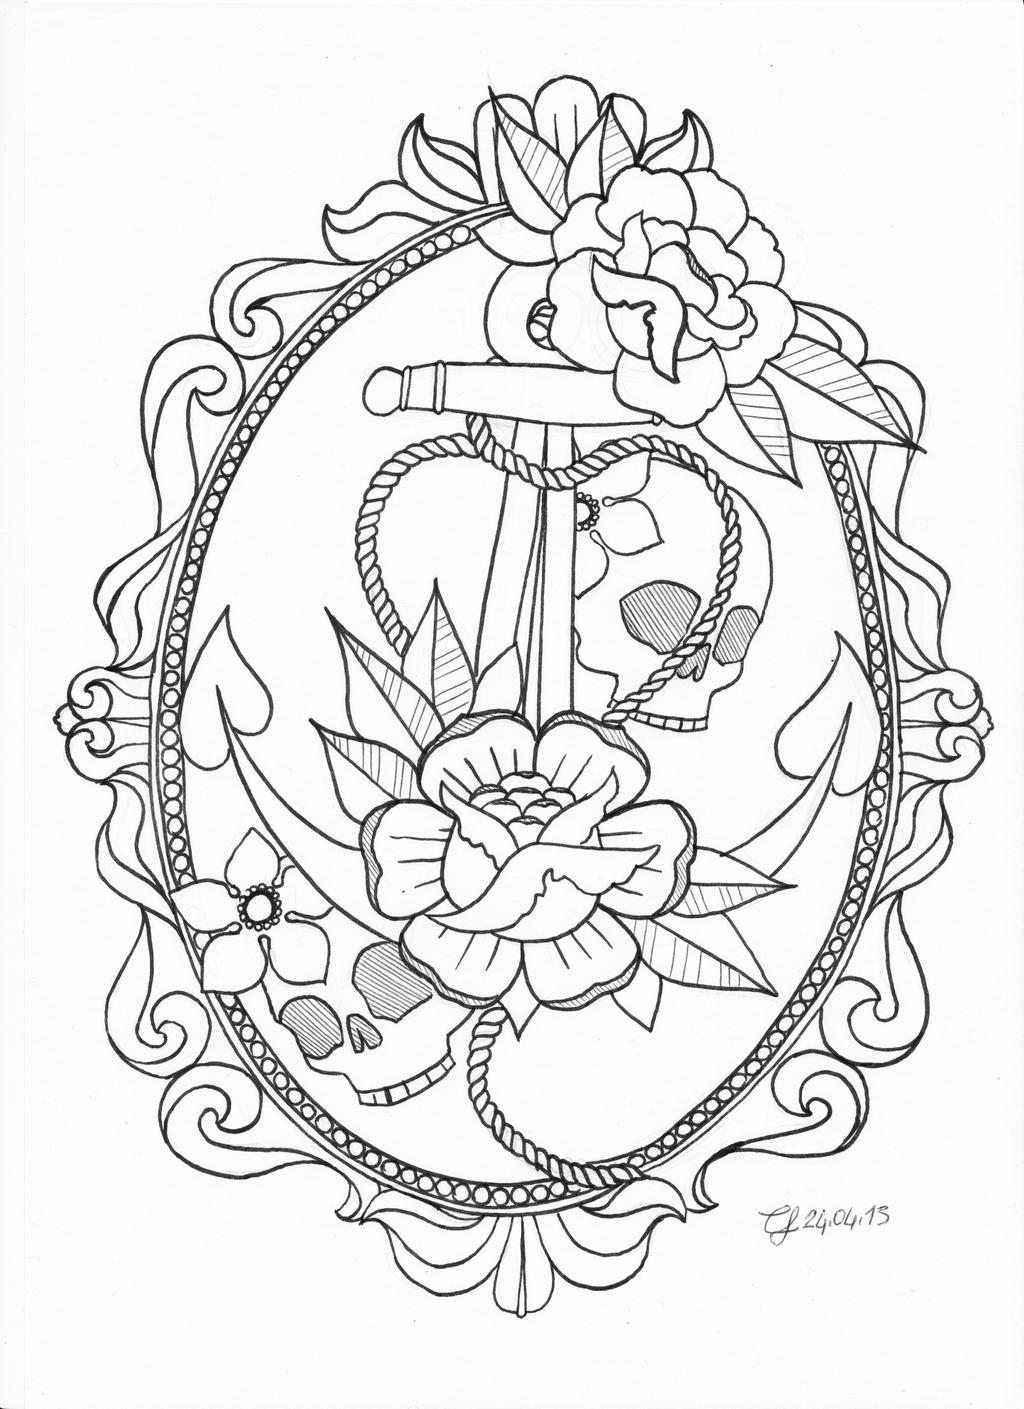 Anchor Tattoo Line Drawing : Anchor tattoo by cllu on deviantart